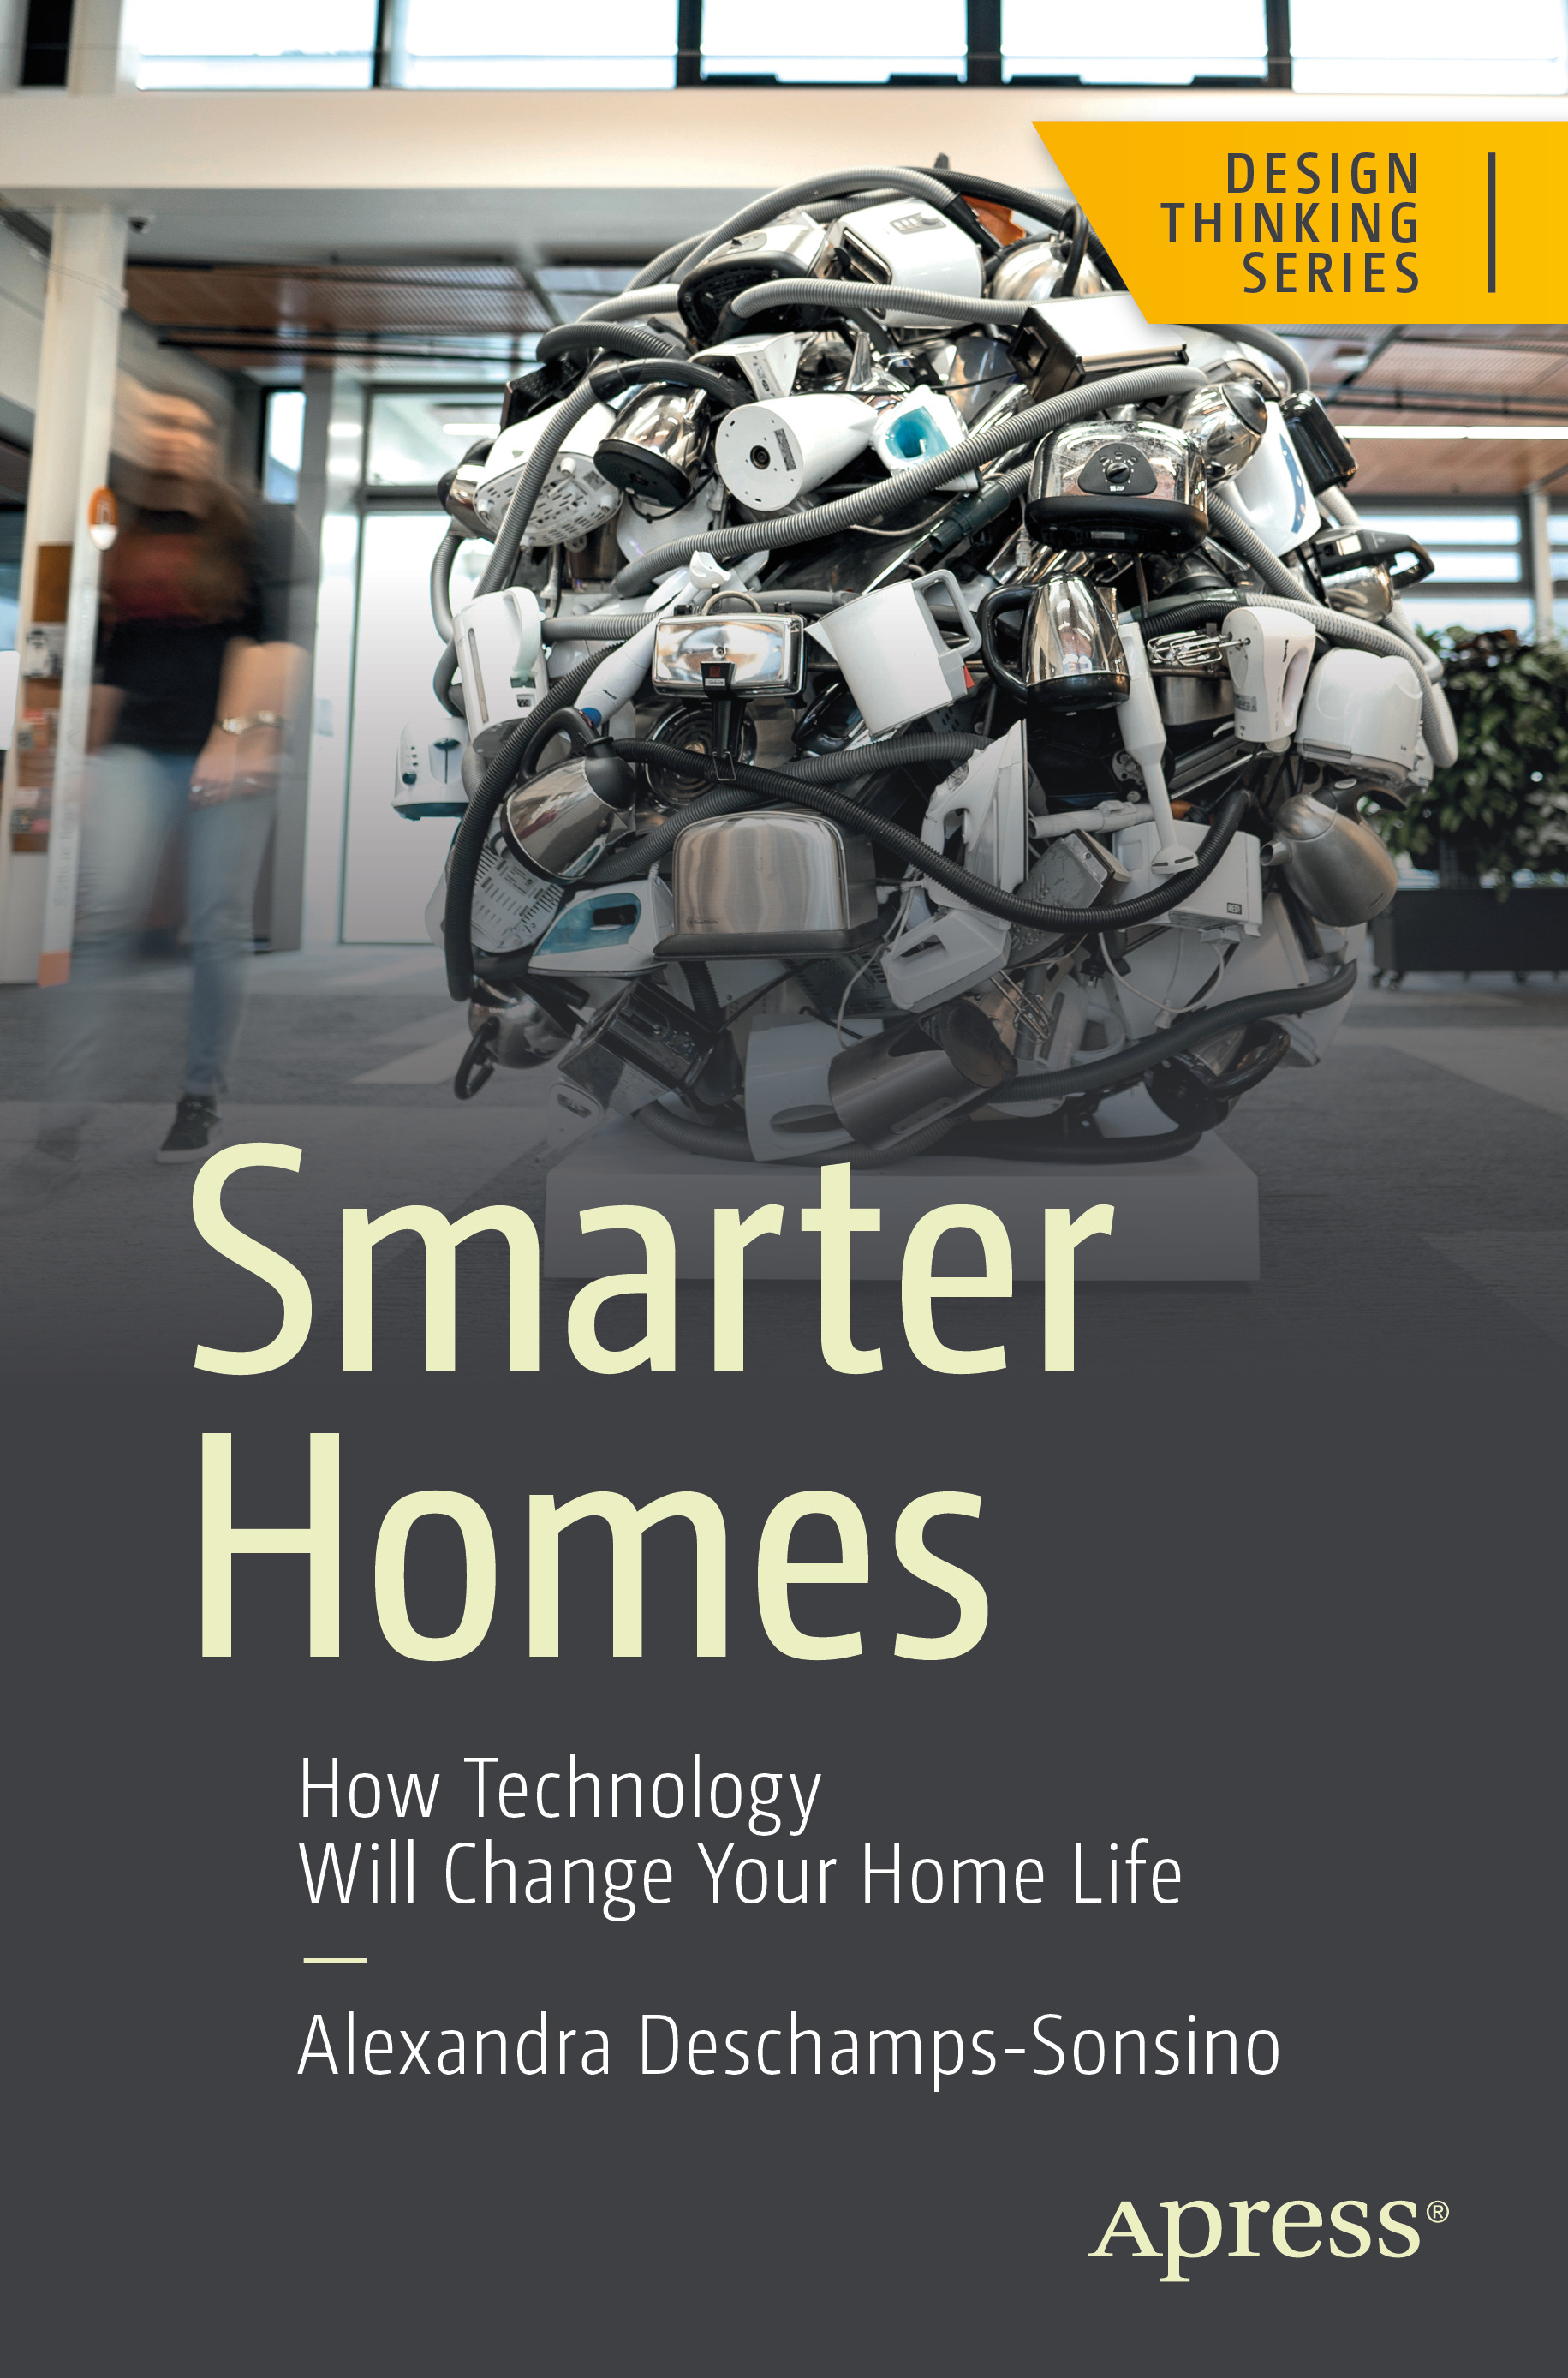 Smarter Homes: how technology will change your home life book